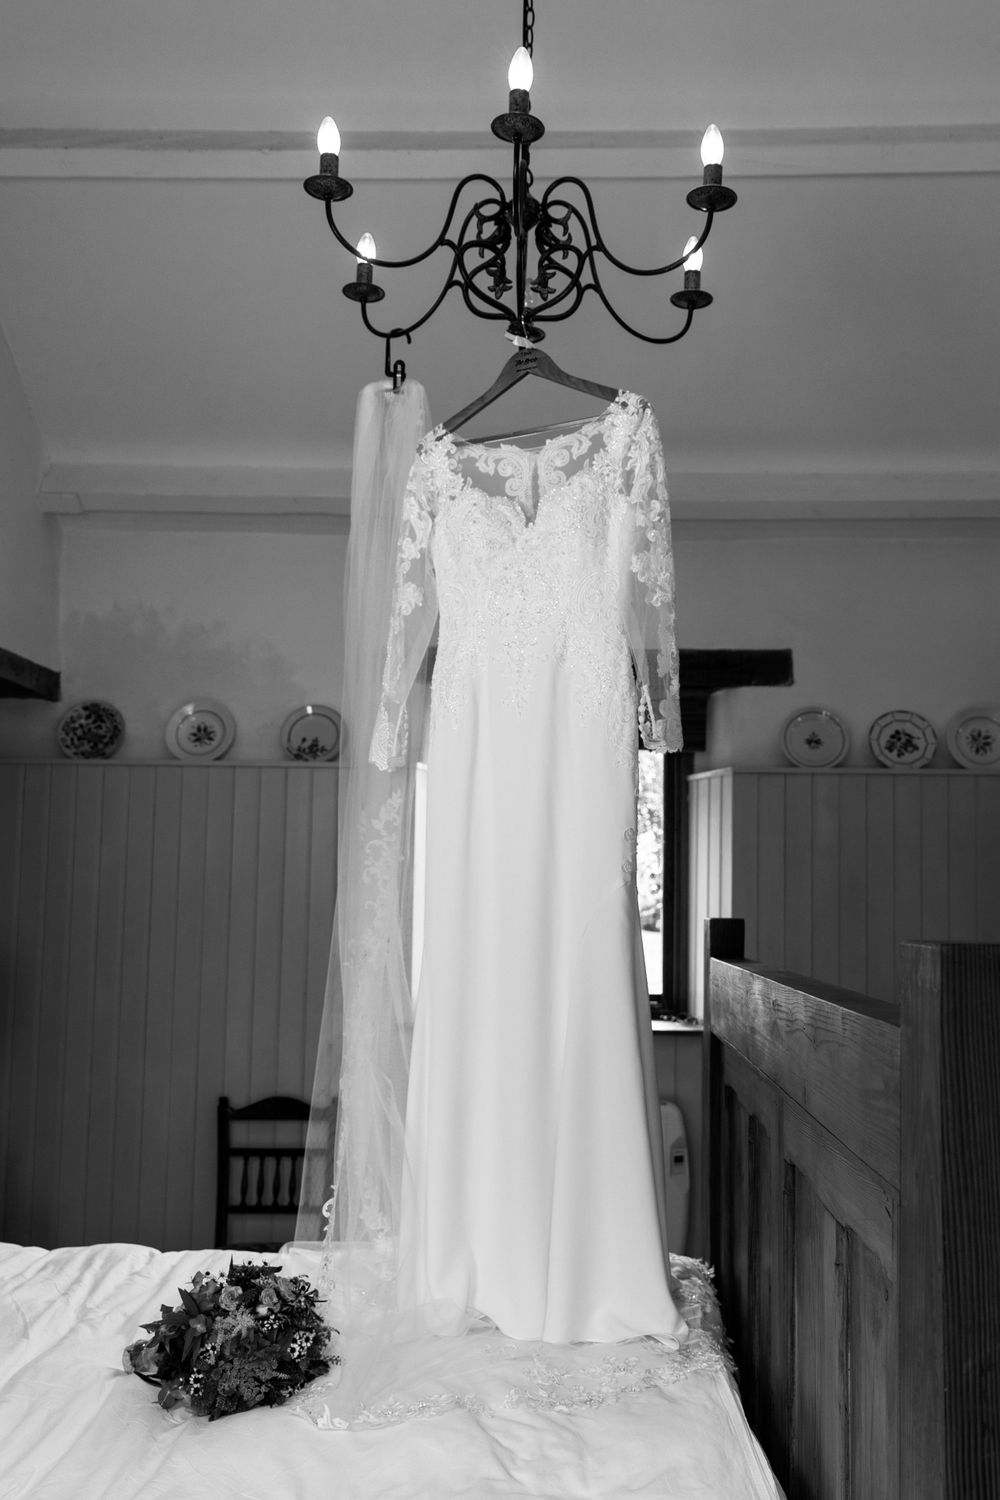 Black and white photo of wedding dress hanging from ceiling light.